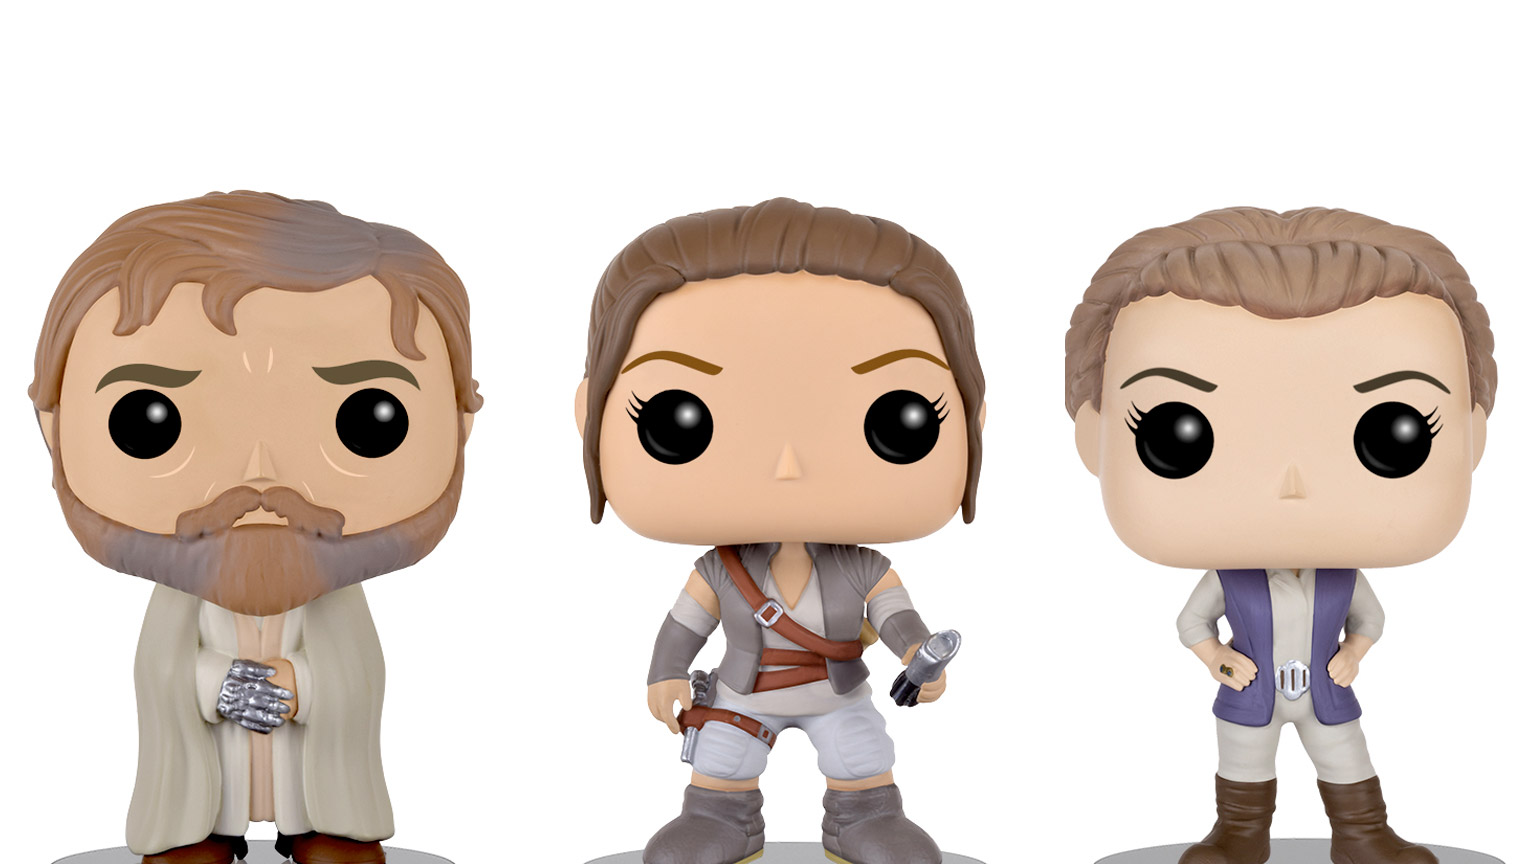 Funko's The Force Awakens Pop! Figures